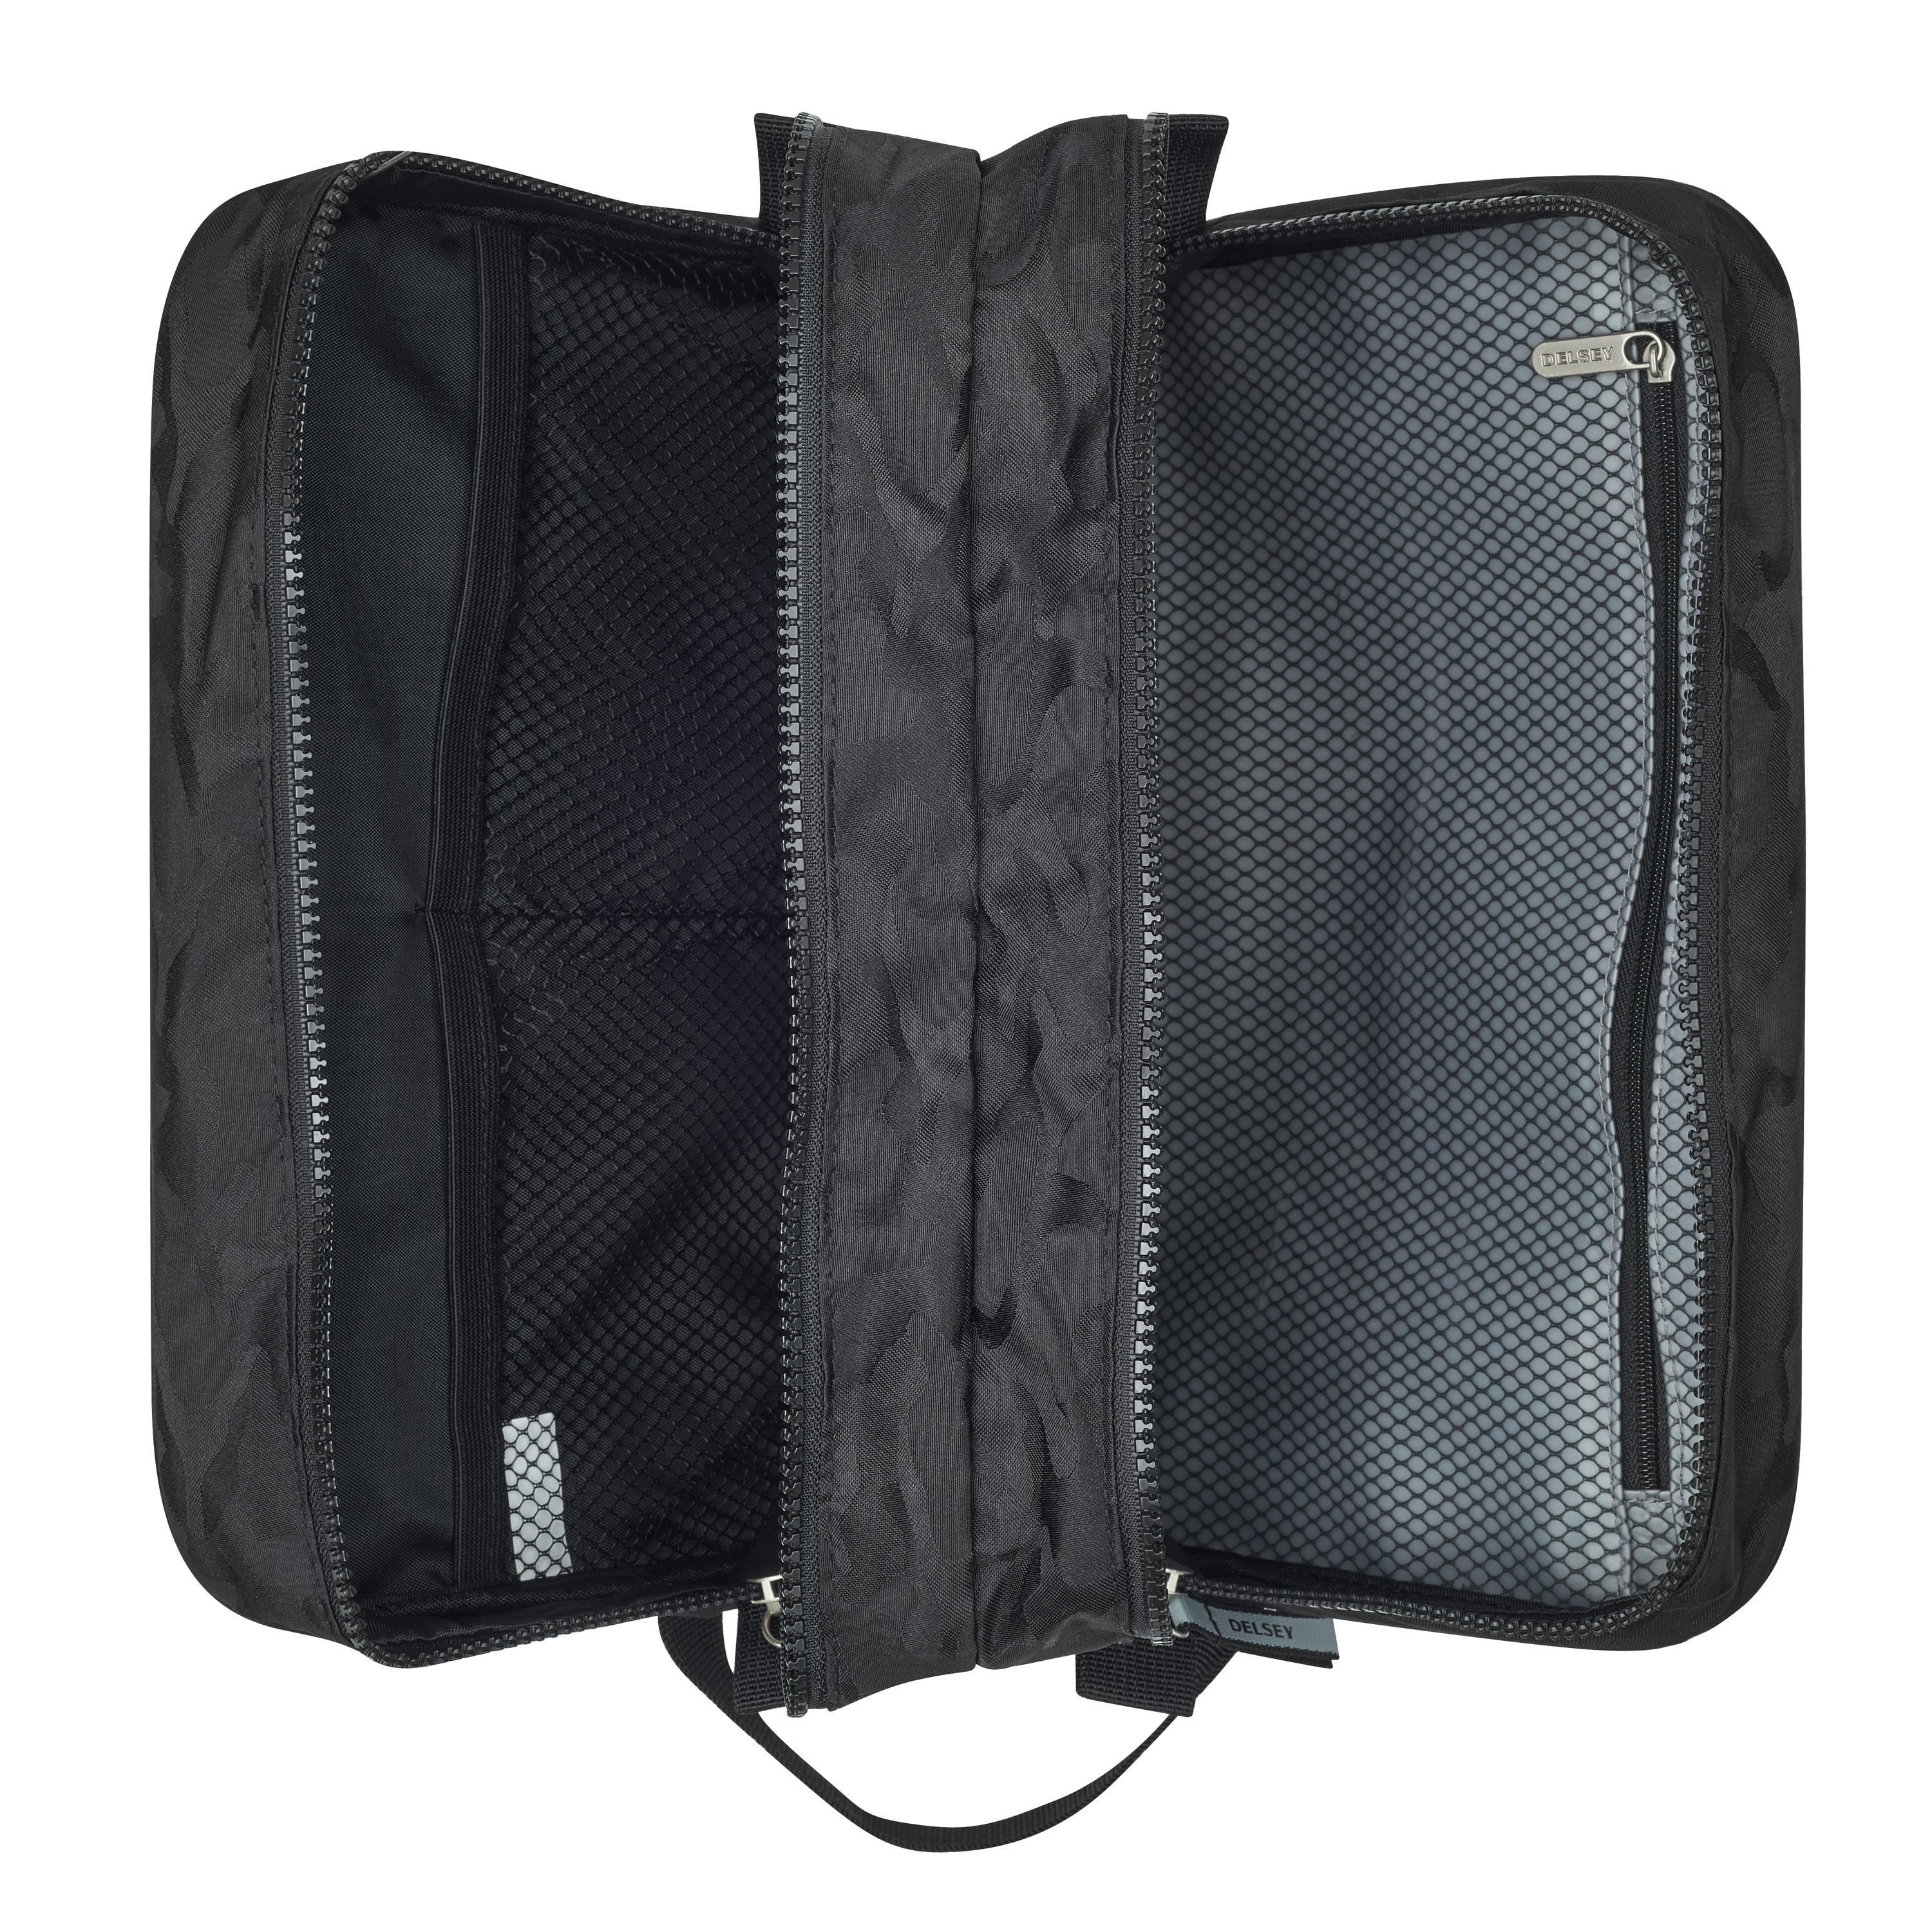 DELSEY ACCESSORY 2.0